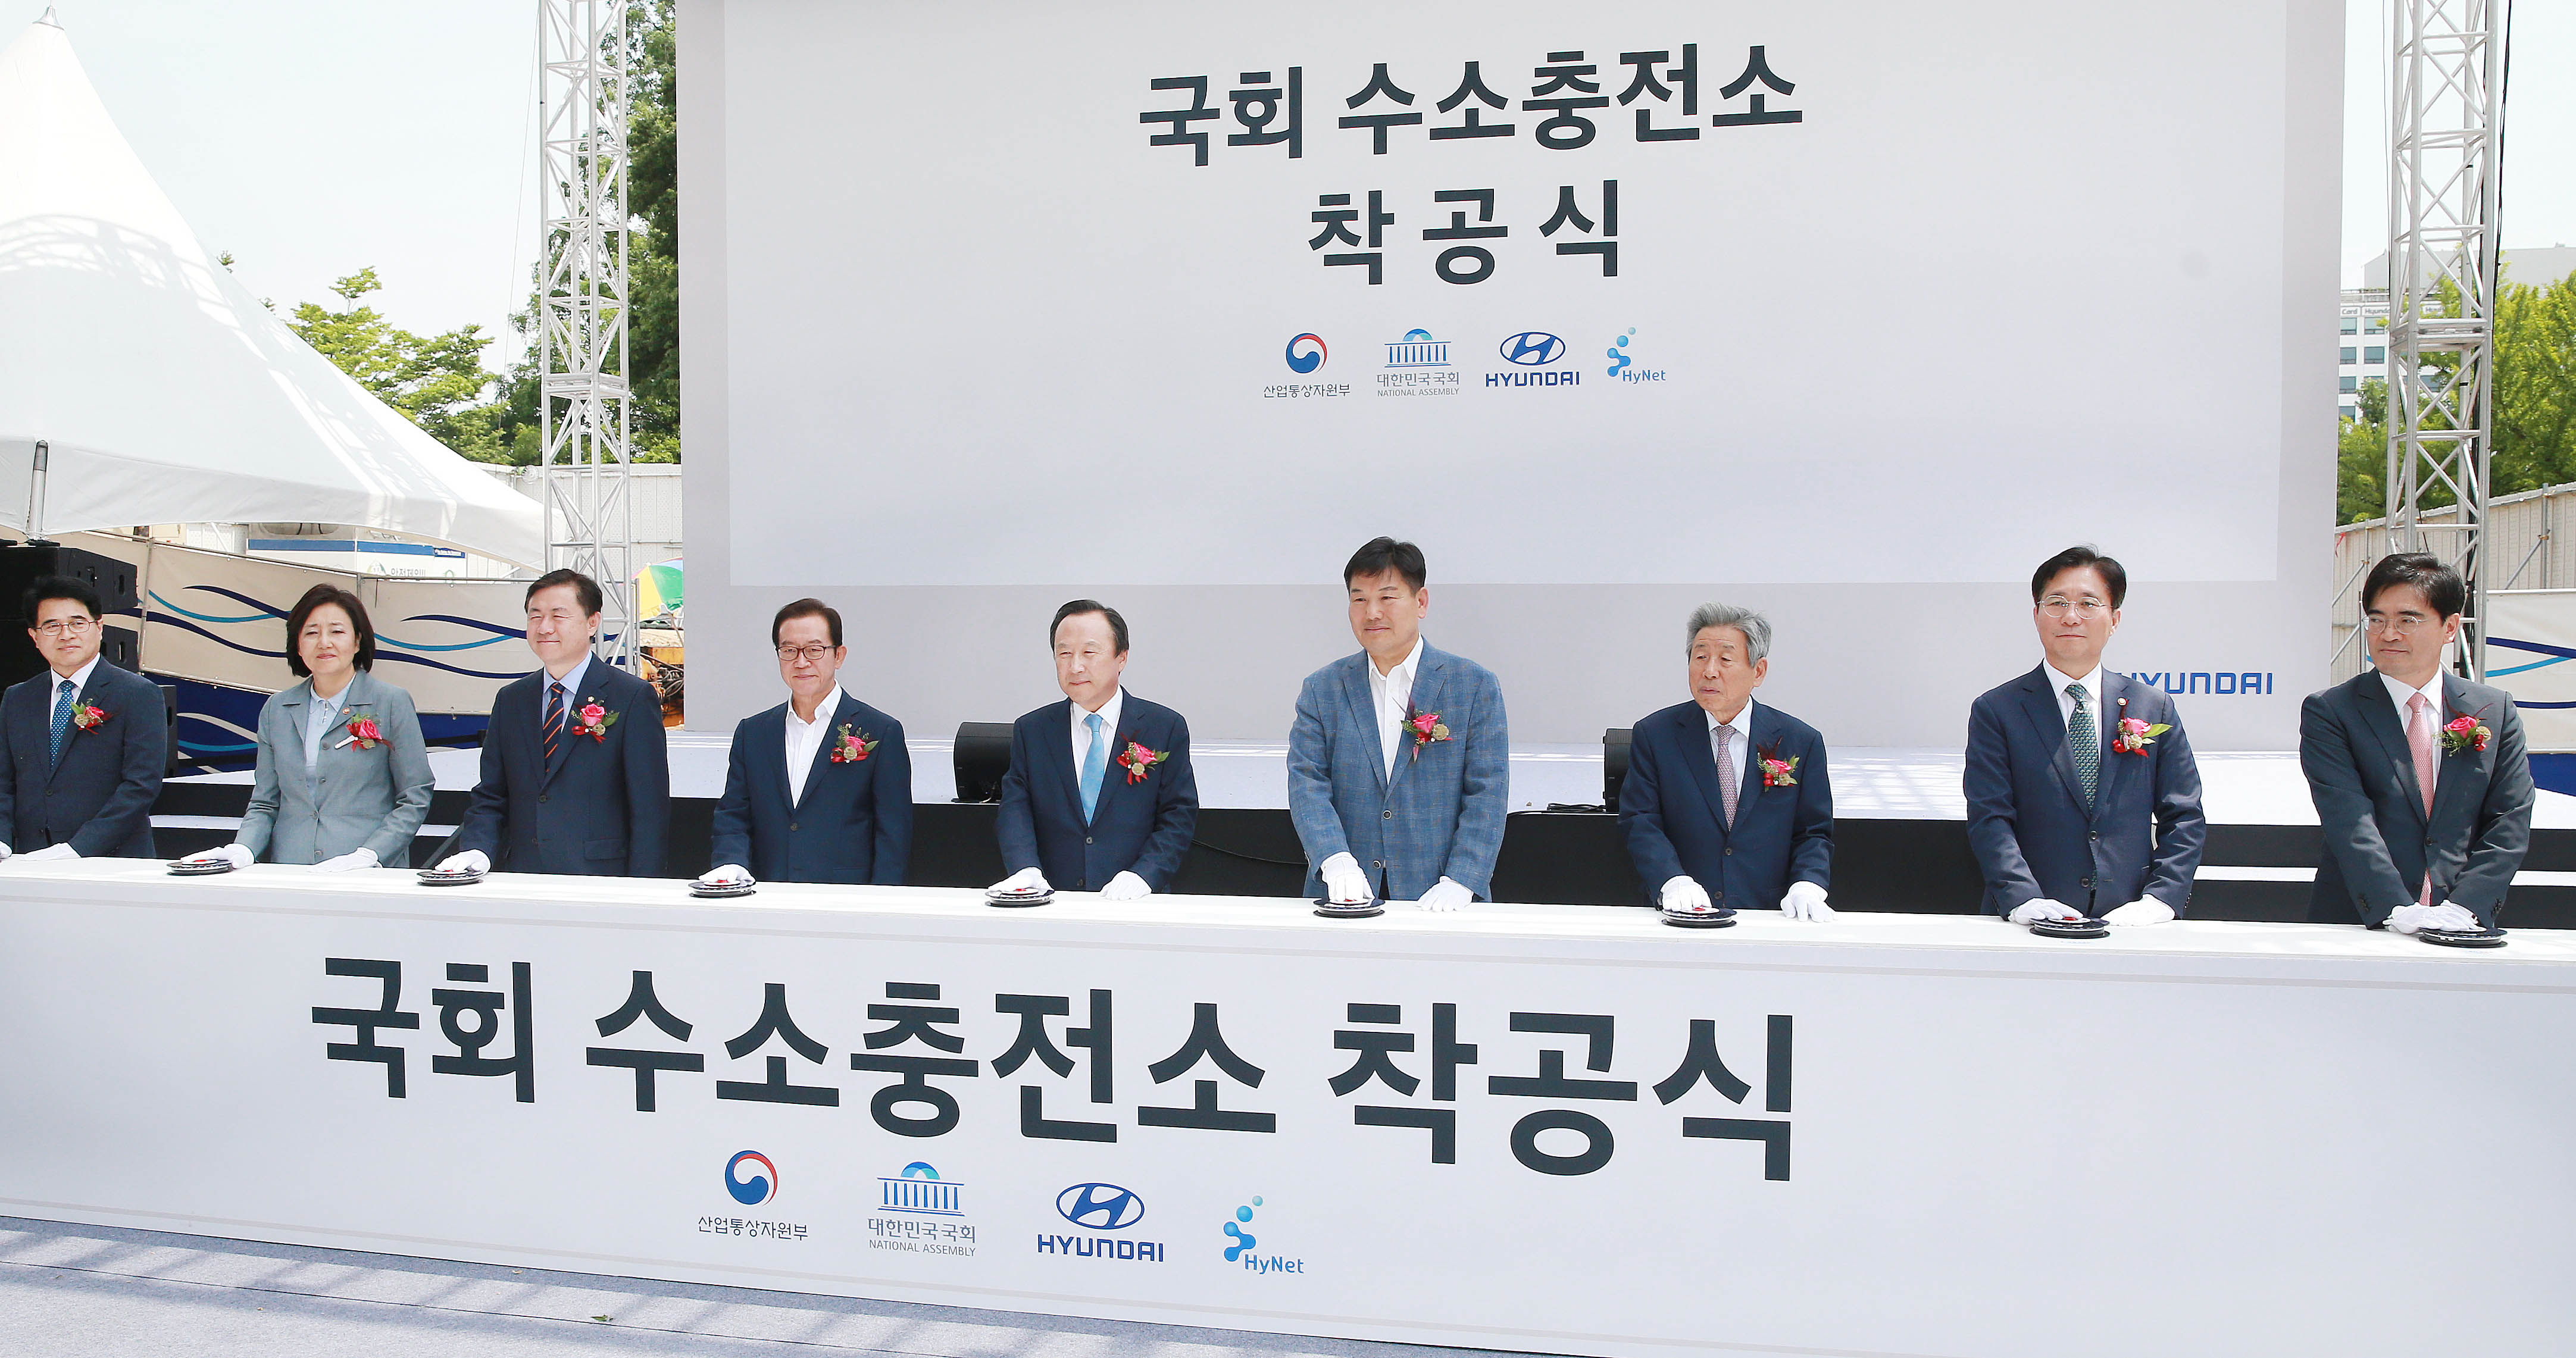 Groundbreaking ceremony held for hydrogen station at Korean National Assembly